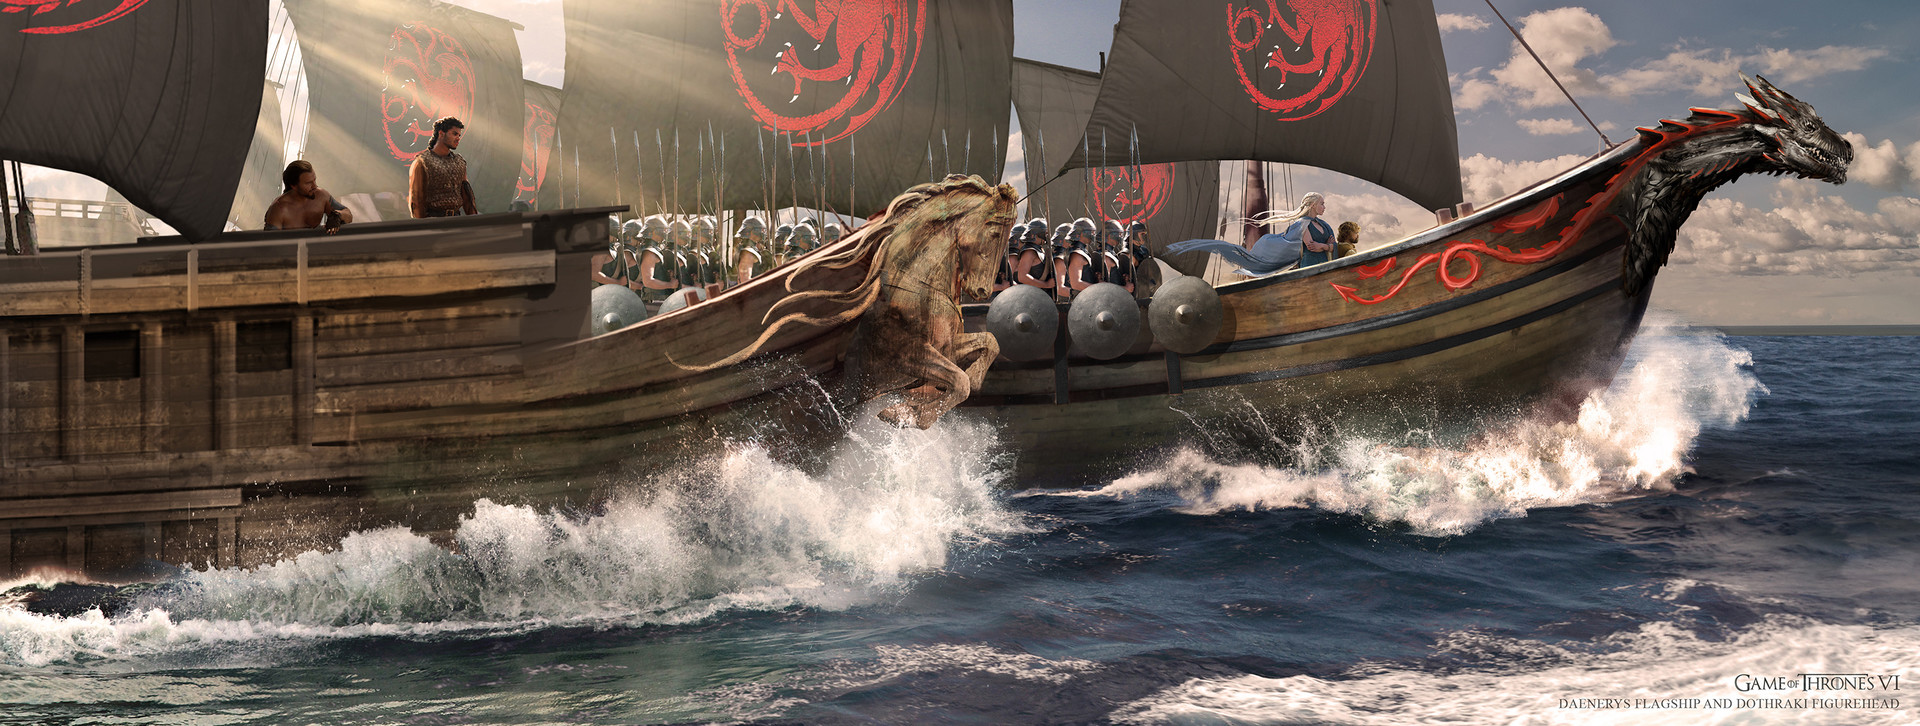 Side View of Dothraki and Dany's Flagship